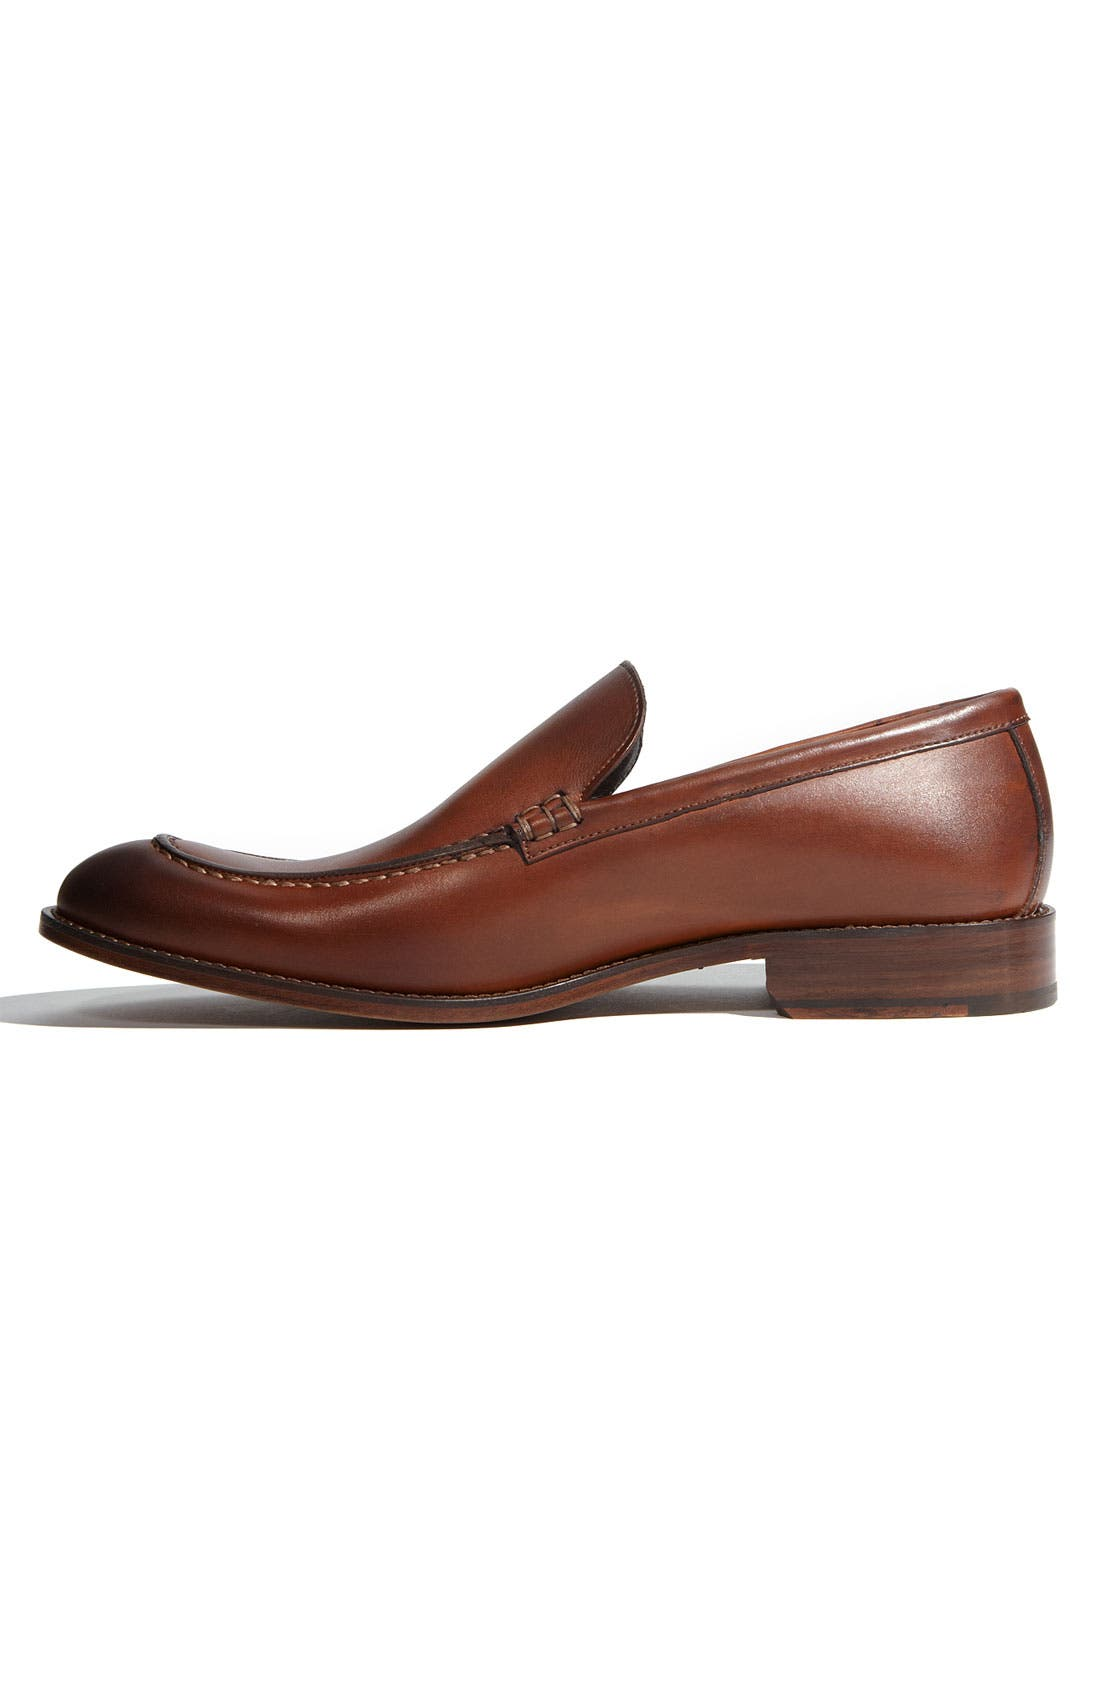 Alternate Image 2  - To Boot New York 'Oakes' Loafer